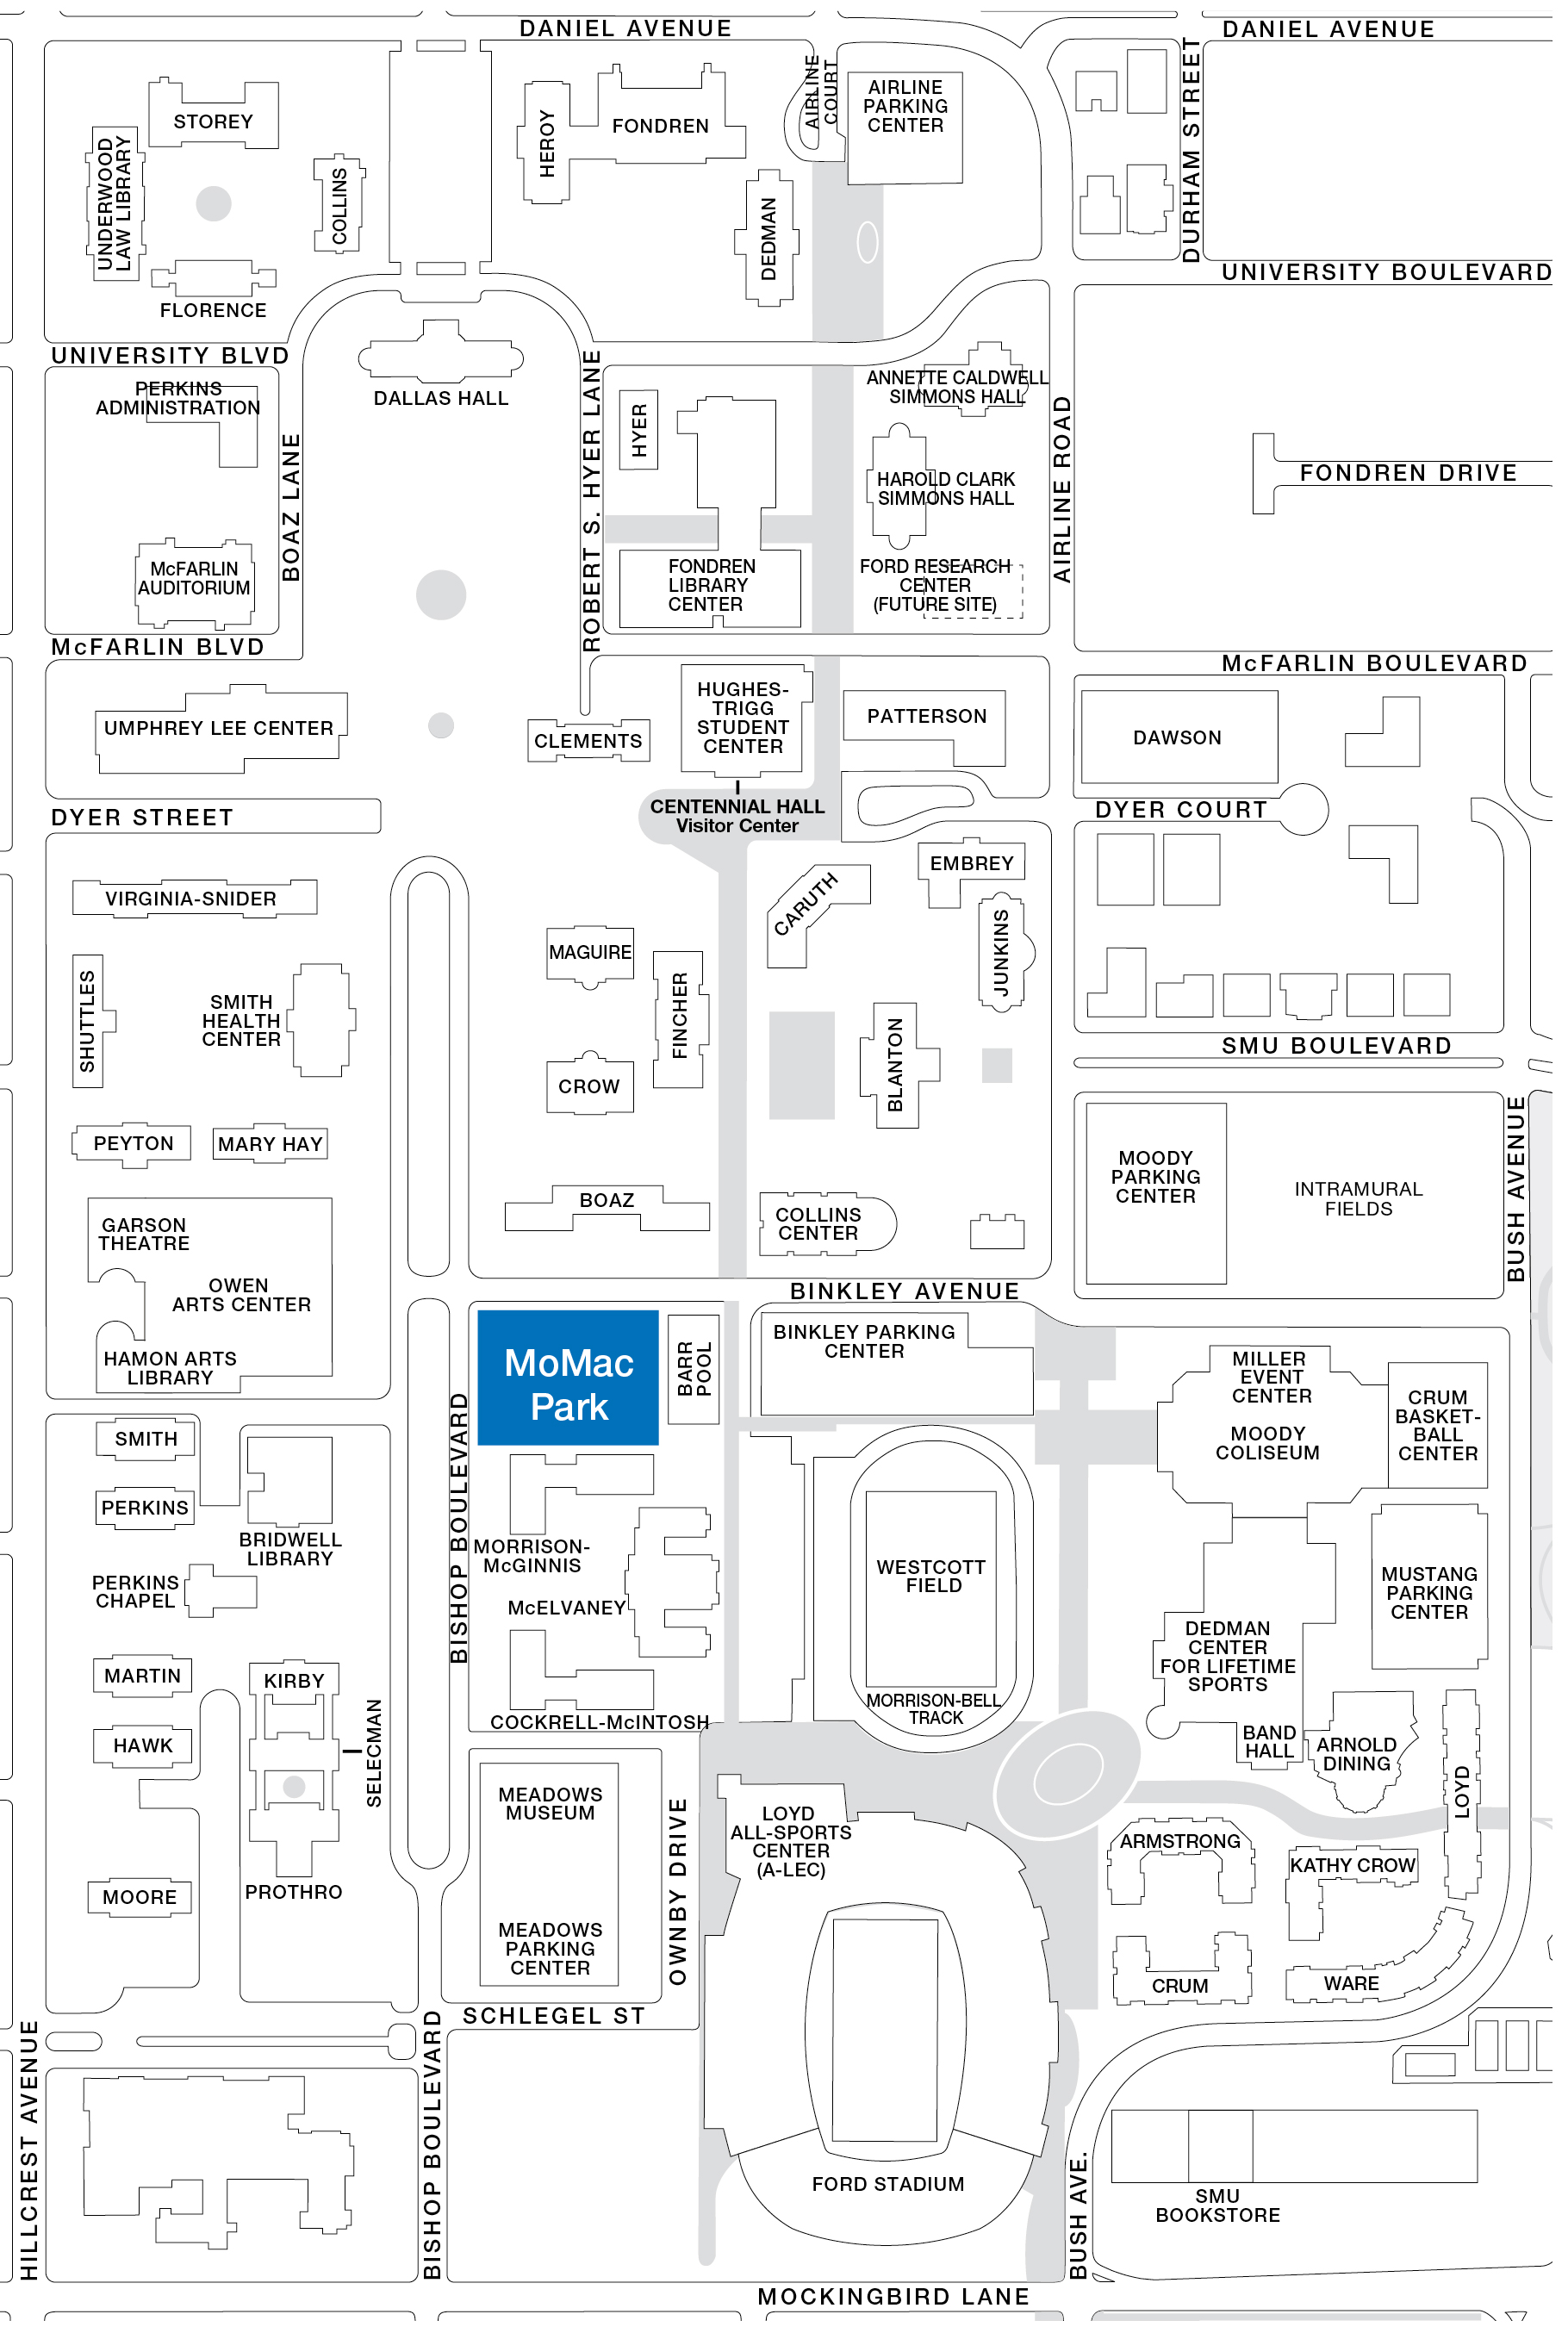 Campus map for lawn displays